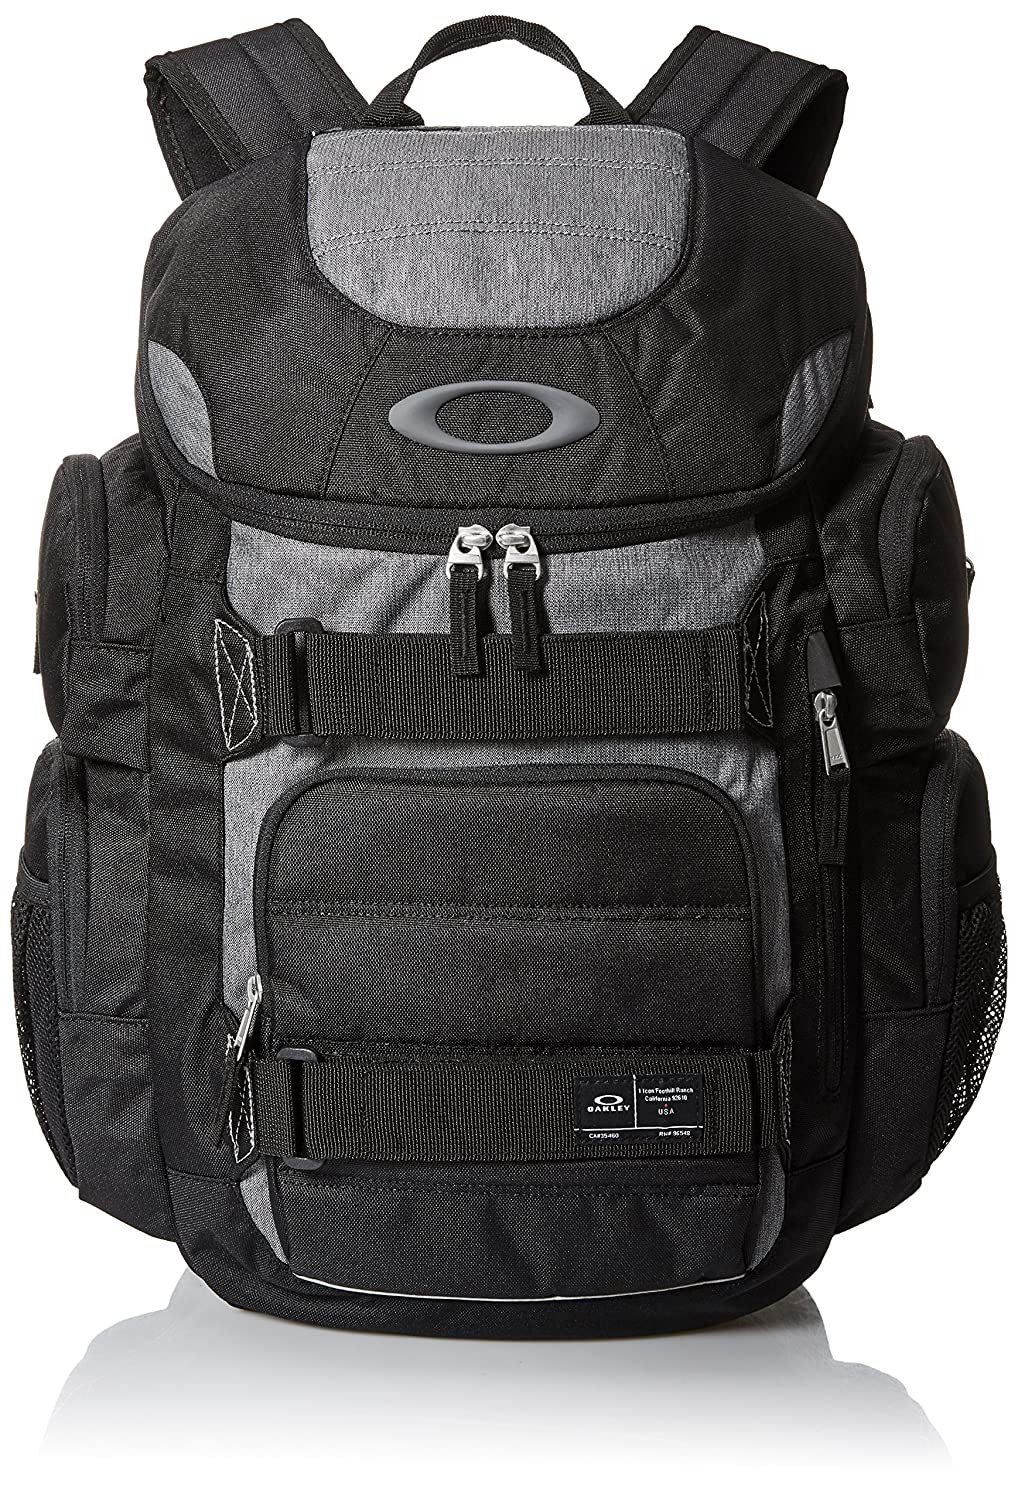 b6a252e8be318 MOCHILA OAKLEY ENDURO 30L 2.0 921012-23Q UNICO CIN  Amazon.com.br  Amazon  Moda